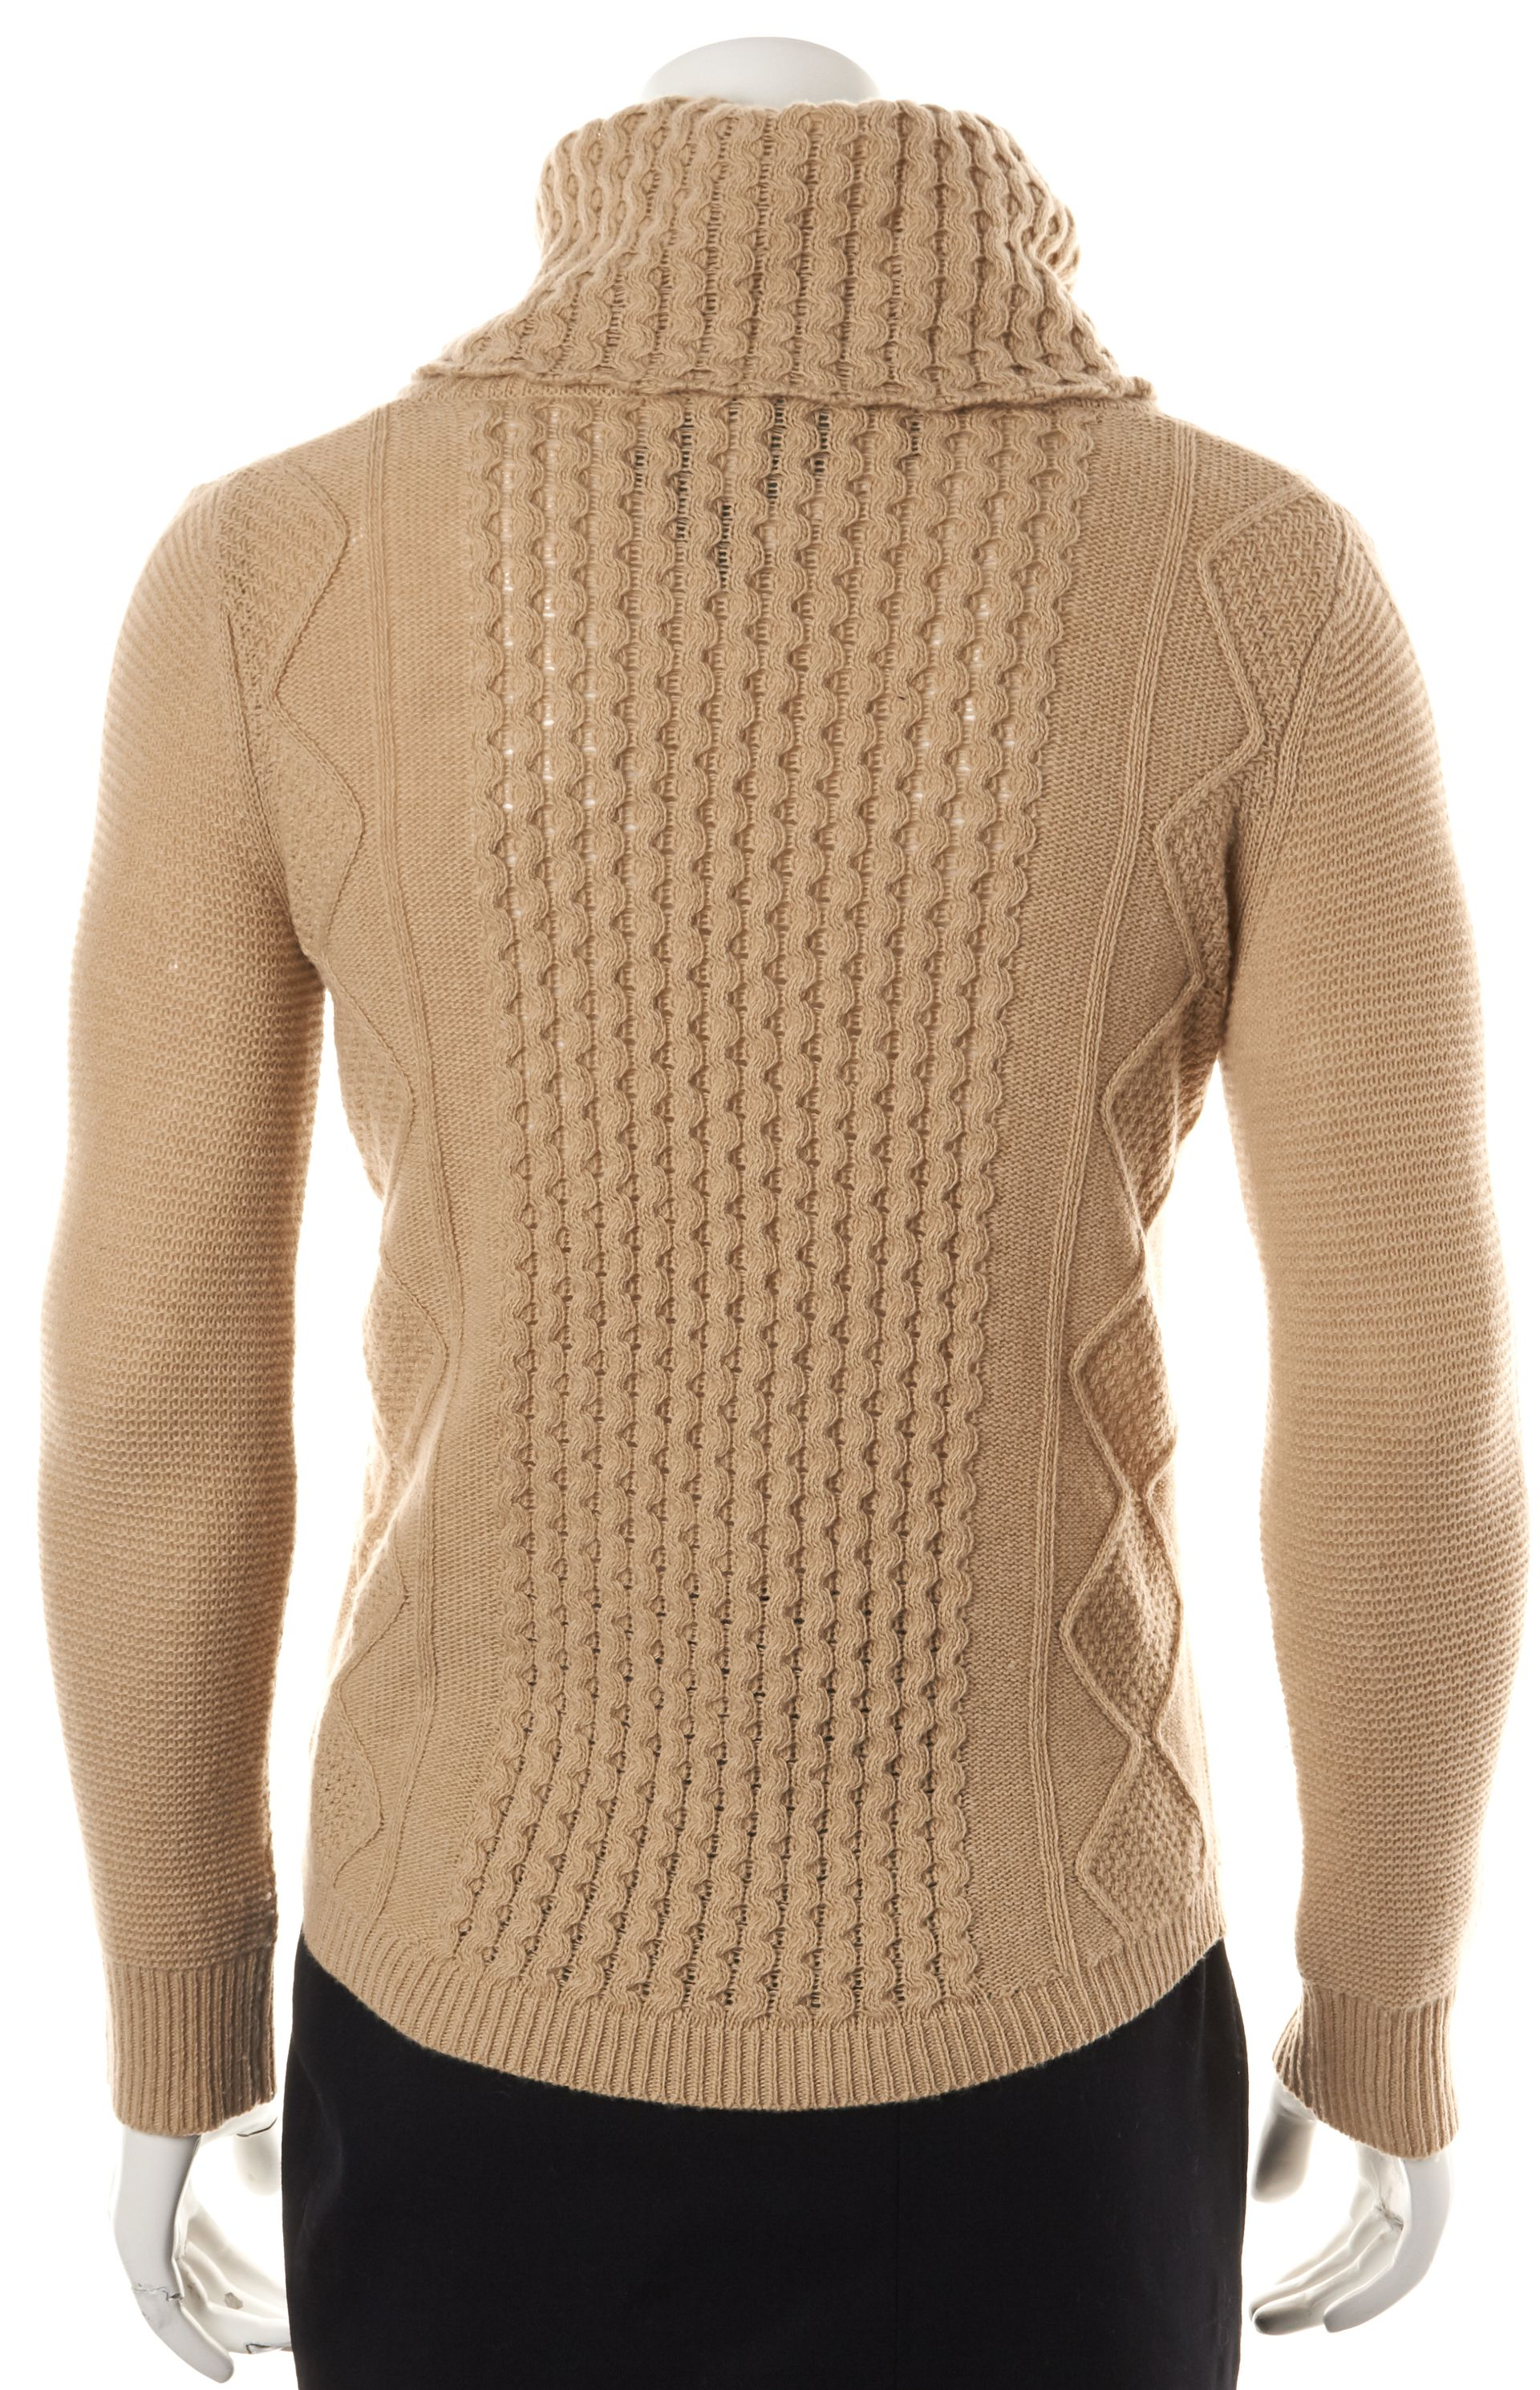 Theory Beige Wool Cable Knit Turtleneck Sweater | Material World